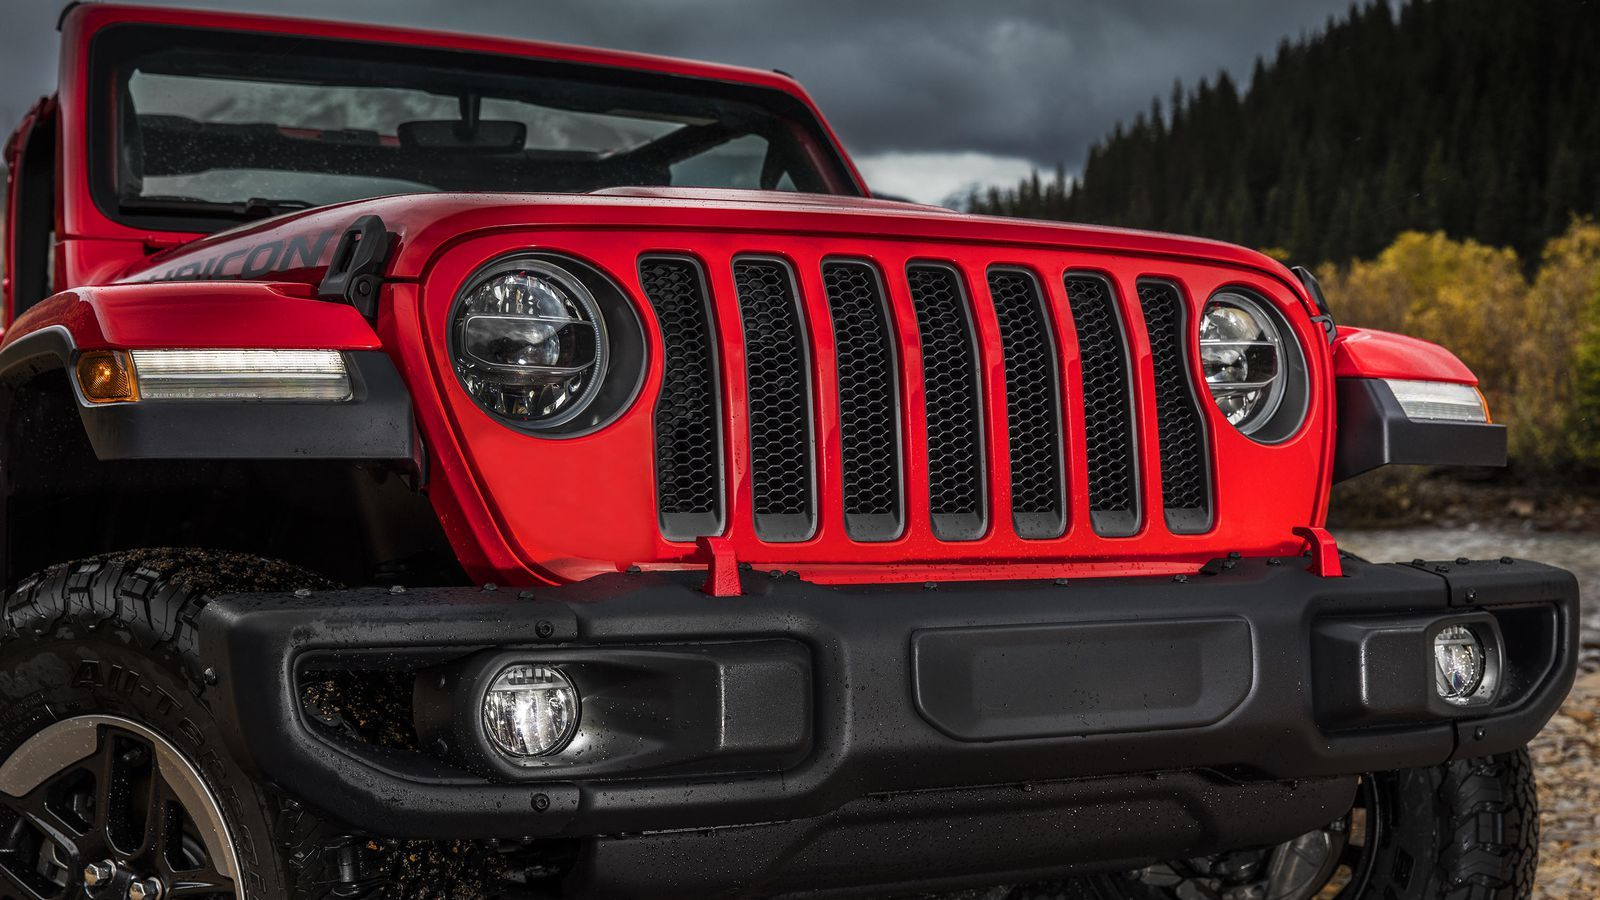 46 The 2021 Jeep Comanche Style Speed Test Di 2020 Mobil